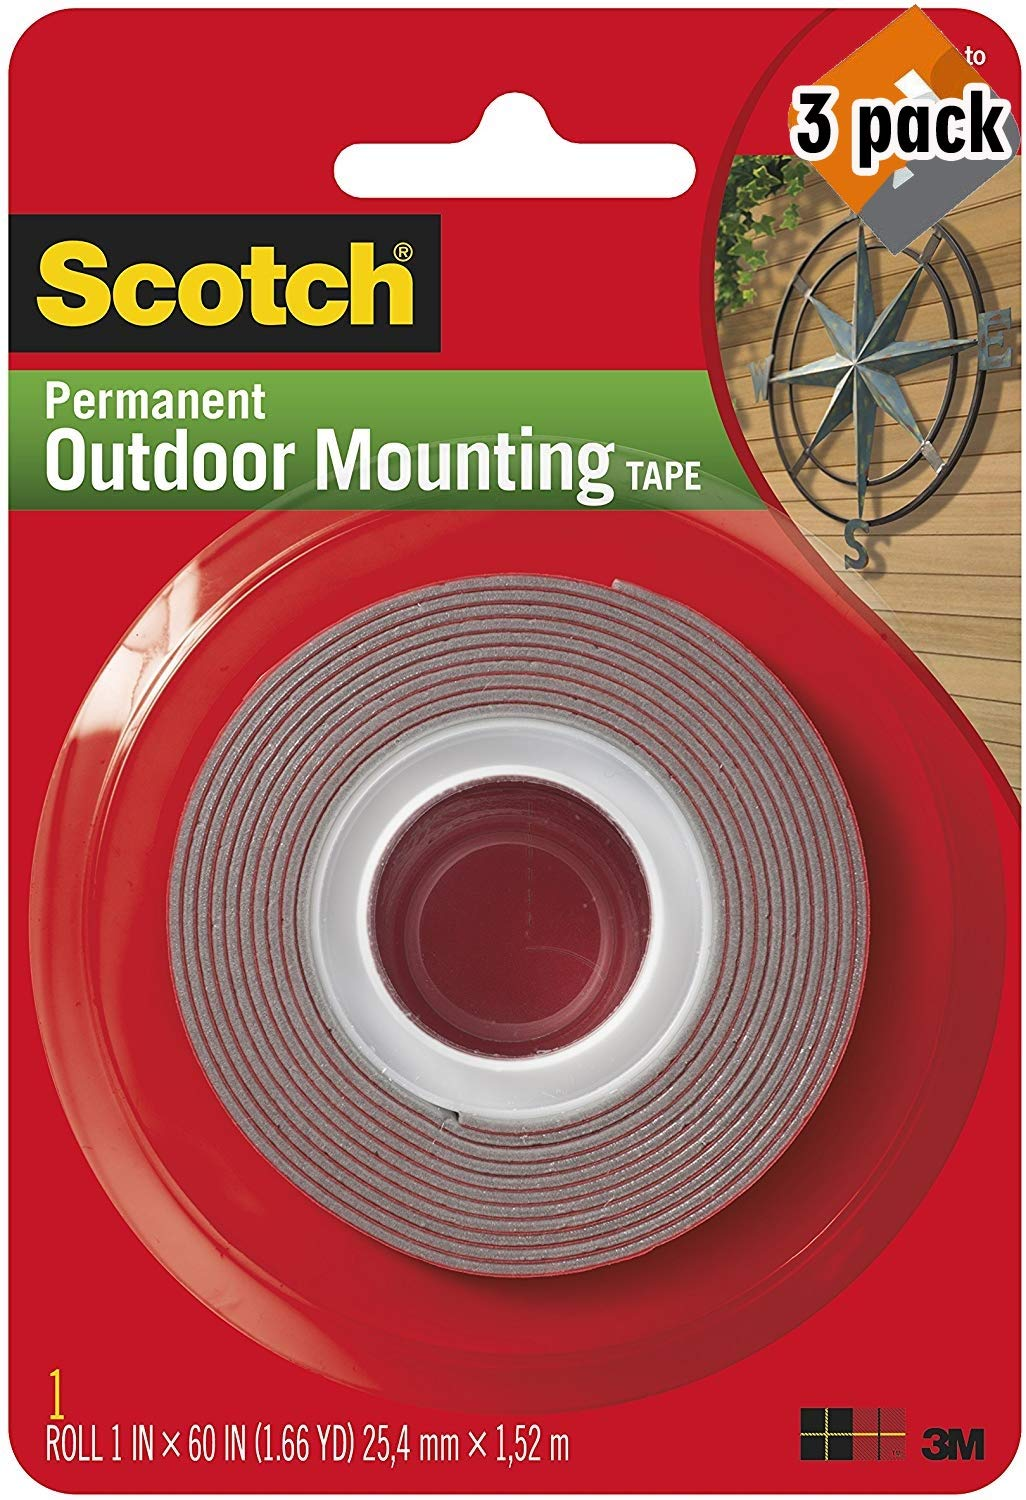 Heavy-Duty Exterior Mounting Tape, Holds 5 lb, 1''x60'' - 3 Pack by Scotch Brand